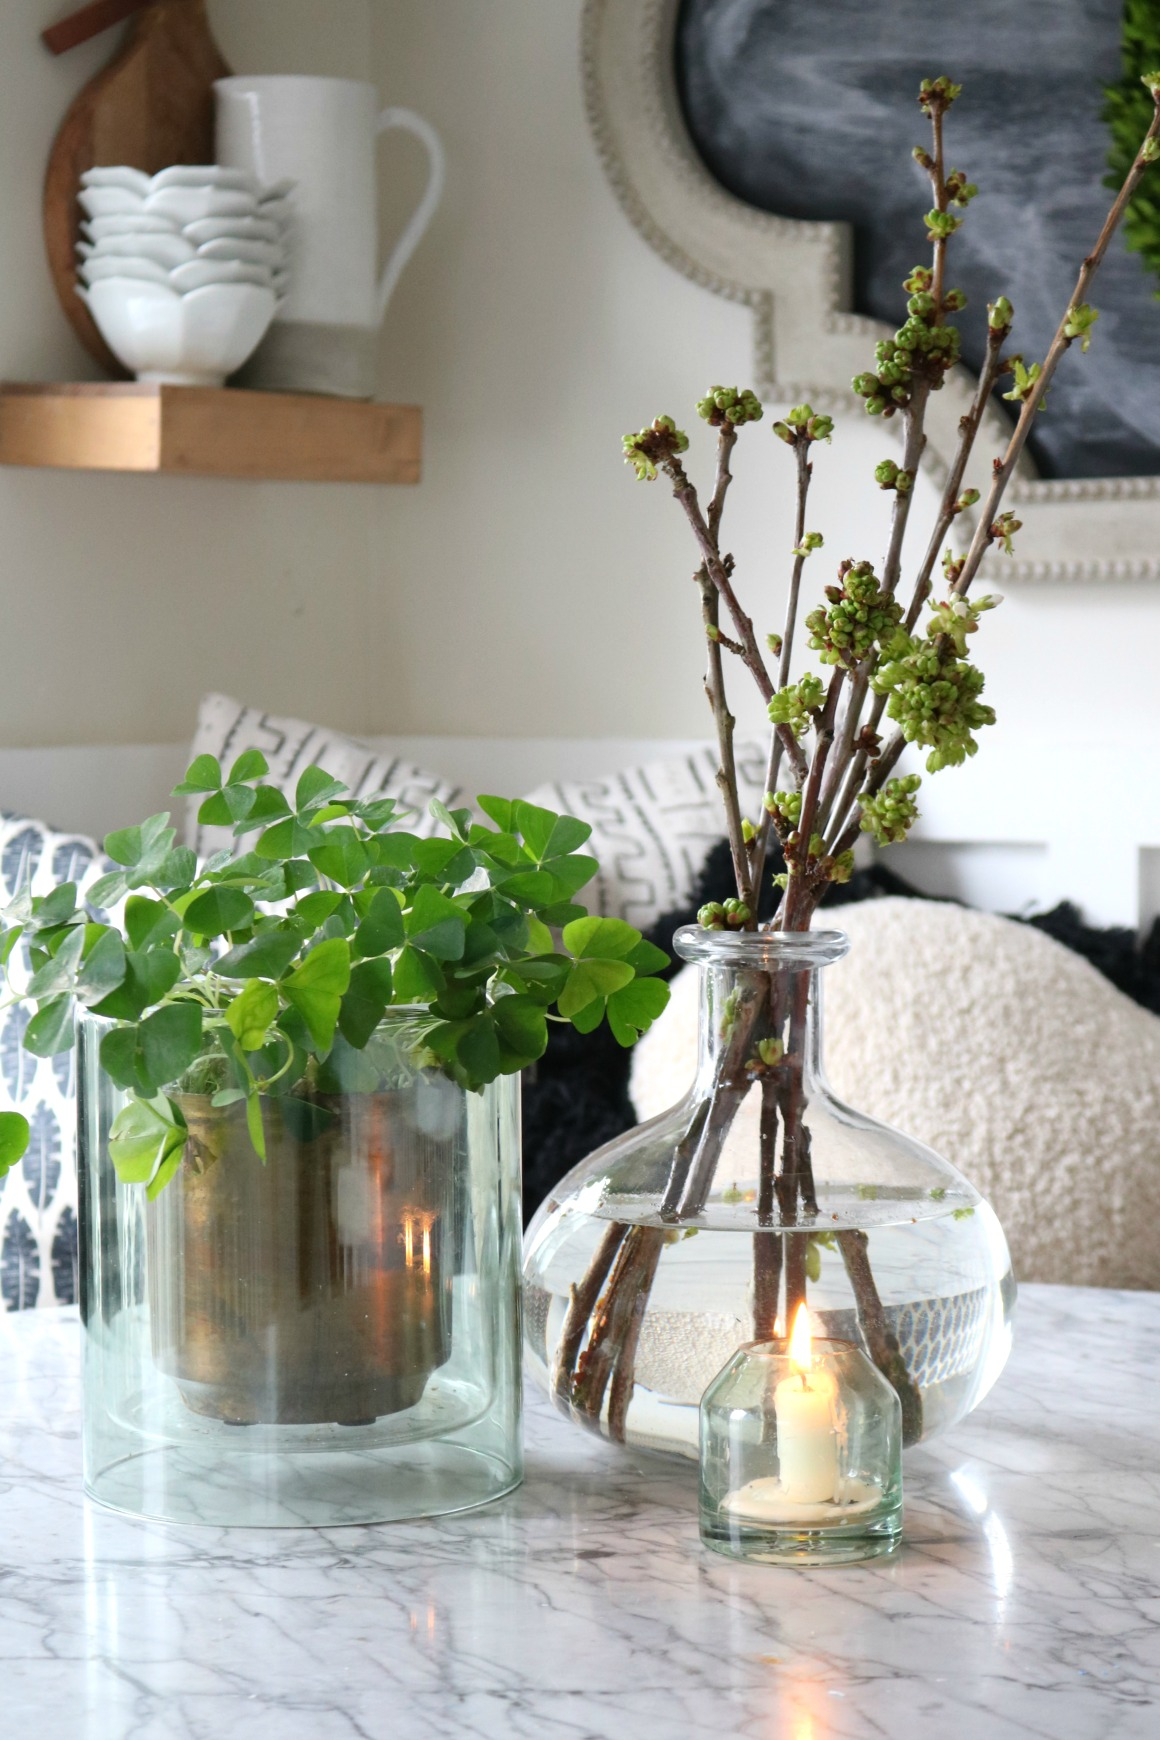 Favorite Things- Simple Coffe Table Center Piece from Target